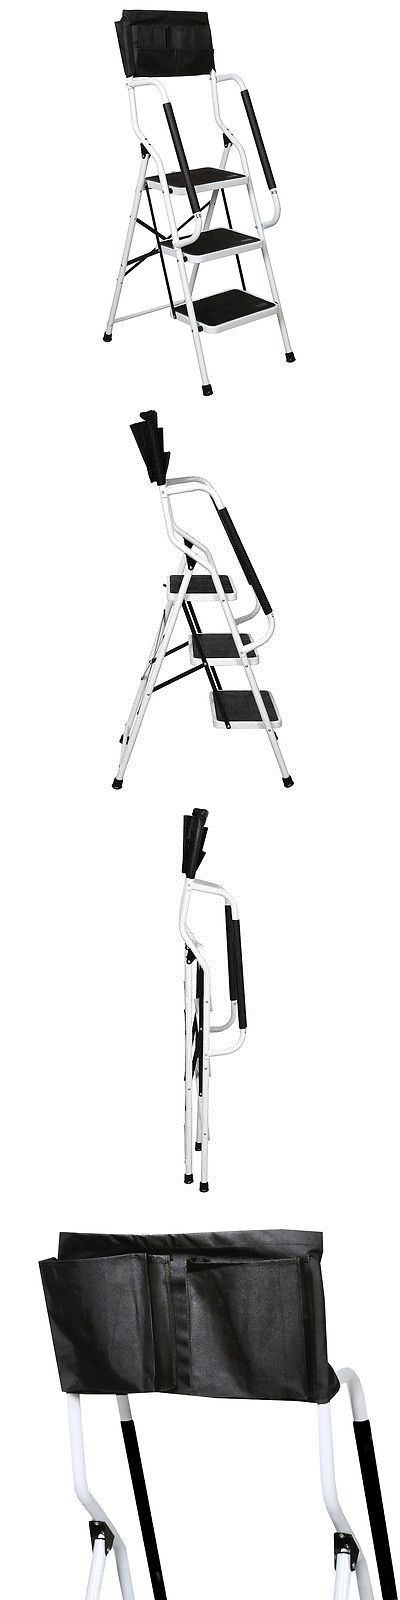 Ladders 112567: Folding 3-Step Safety Ladder - Padded Side Handrails - With Tool Pouch Caddy -> BUY IT NOW ONLY: $74.99 on eBay!